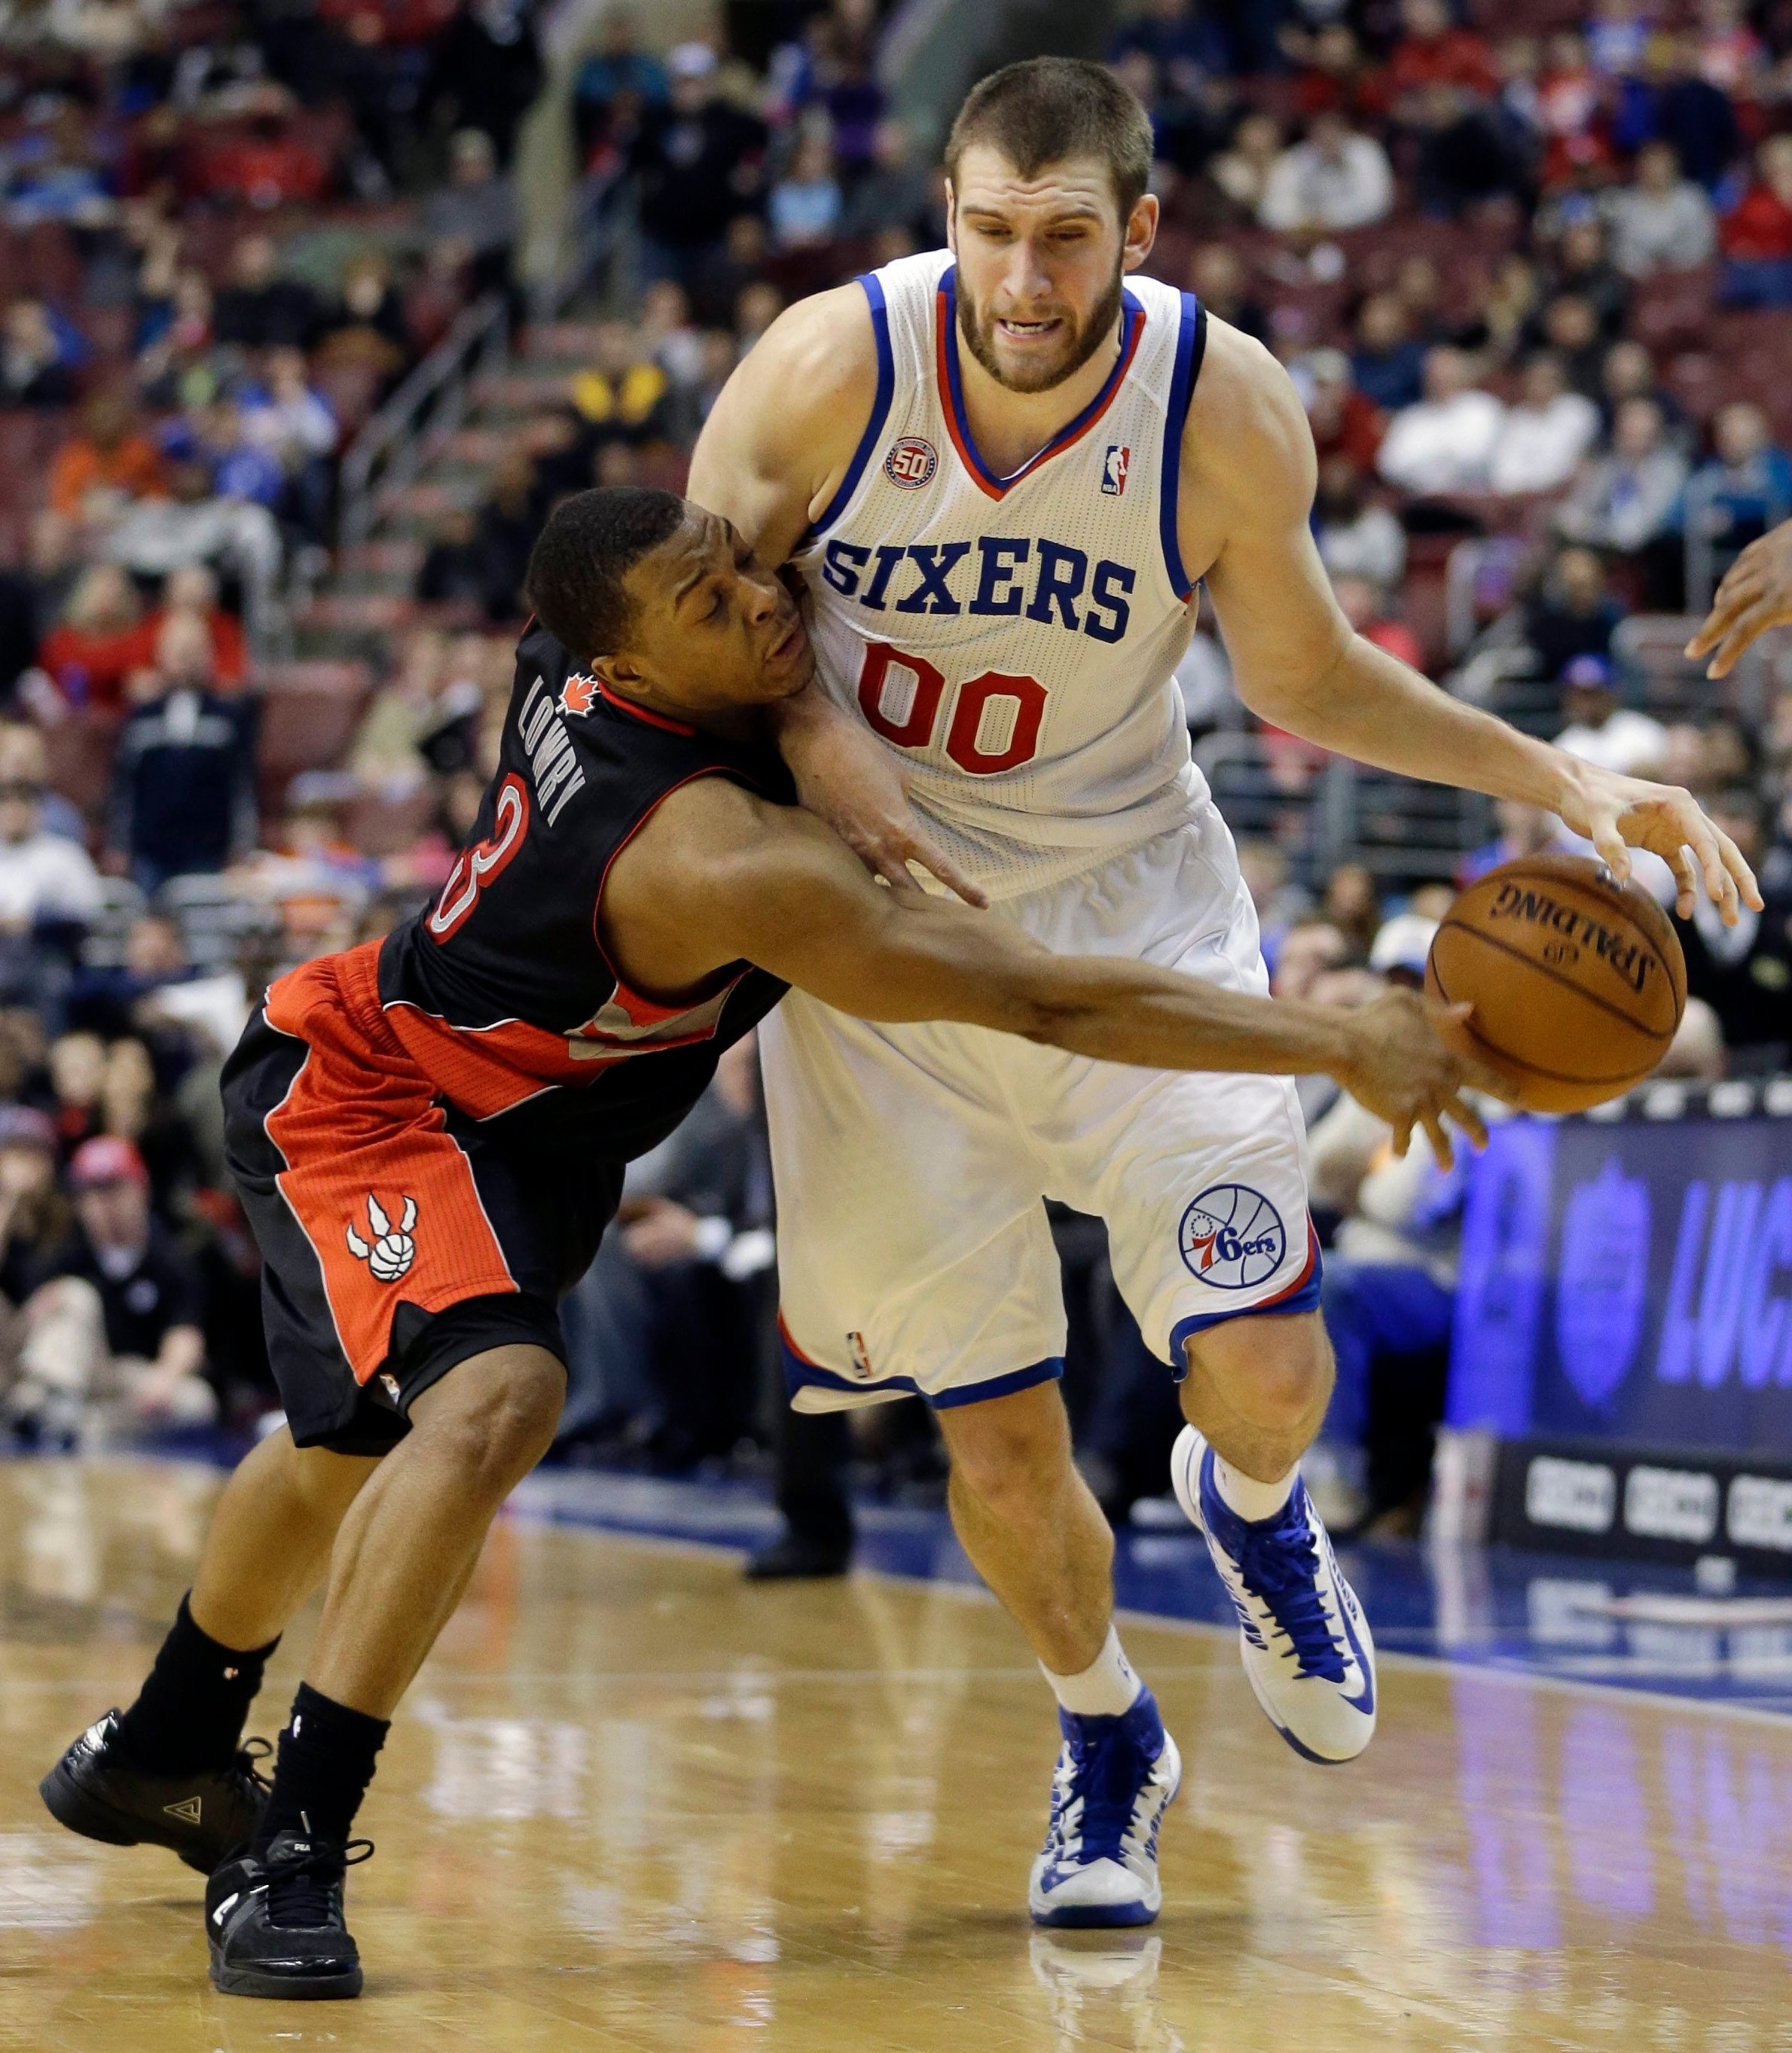 Spencer Hawes, Kyle Lowry